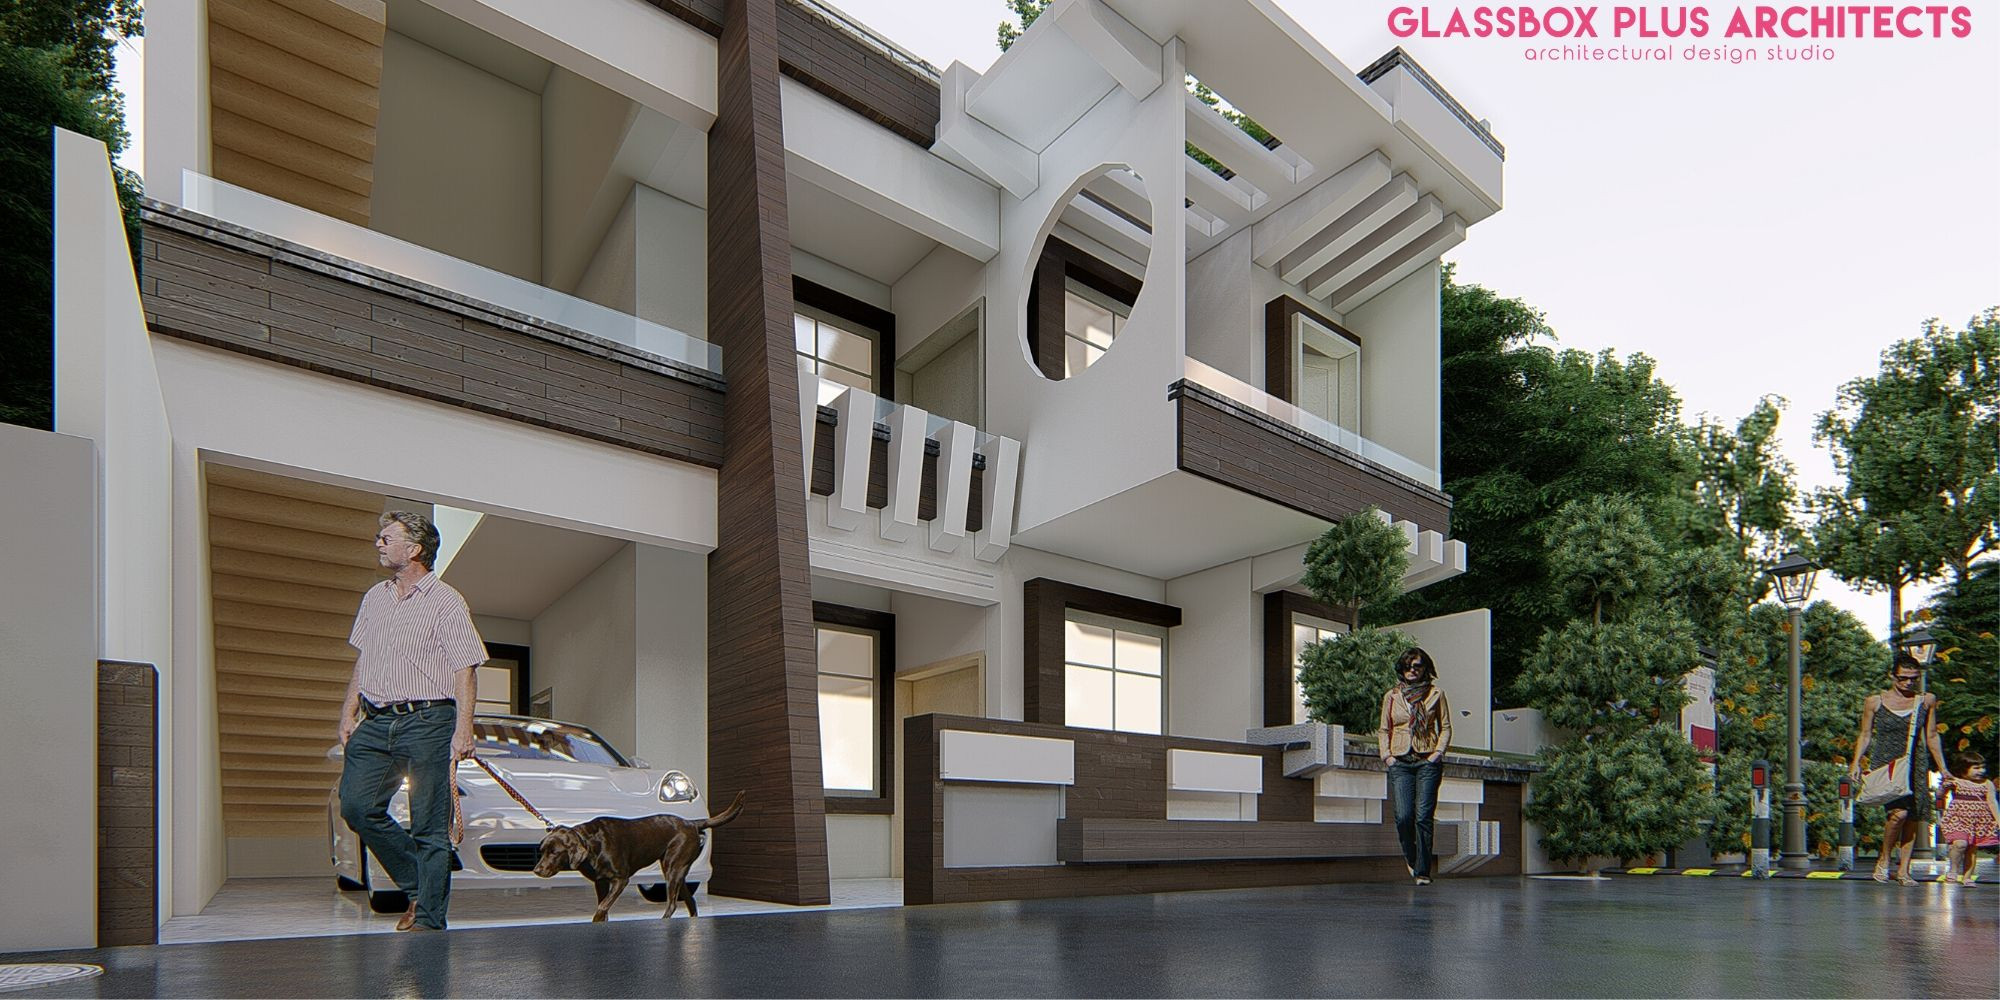 House Design by Glassbox Plus Architects in Lucknow